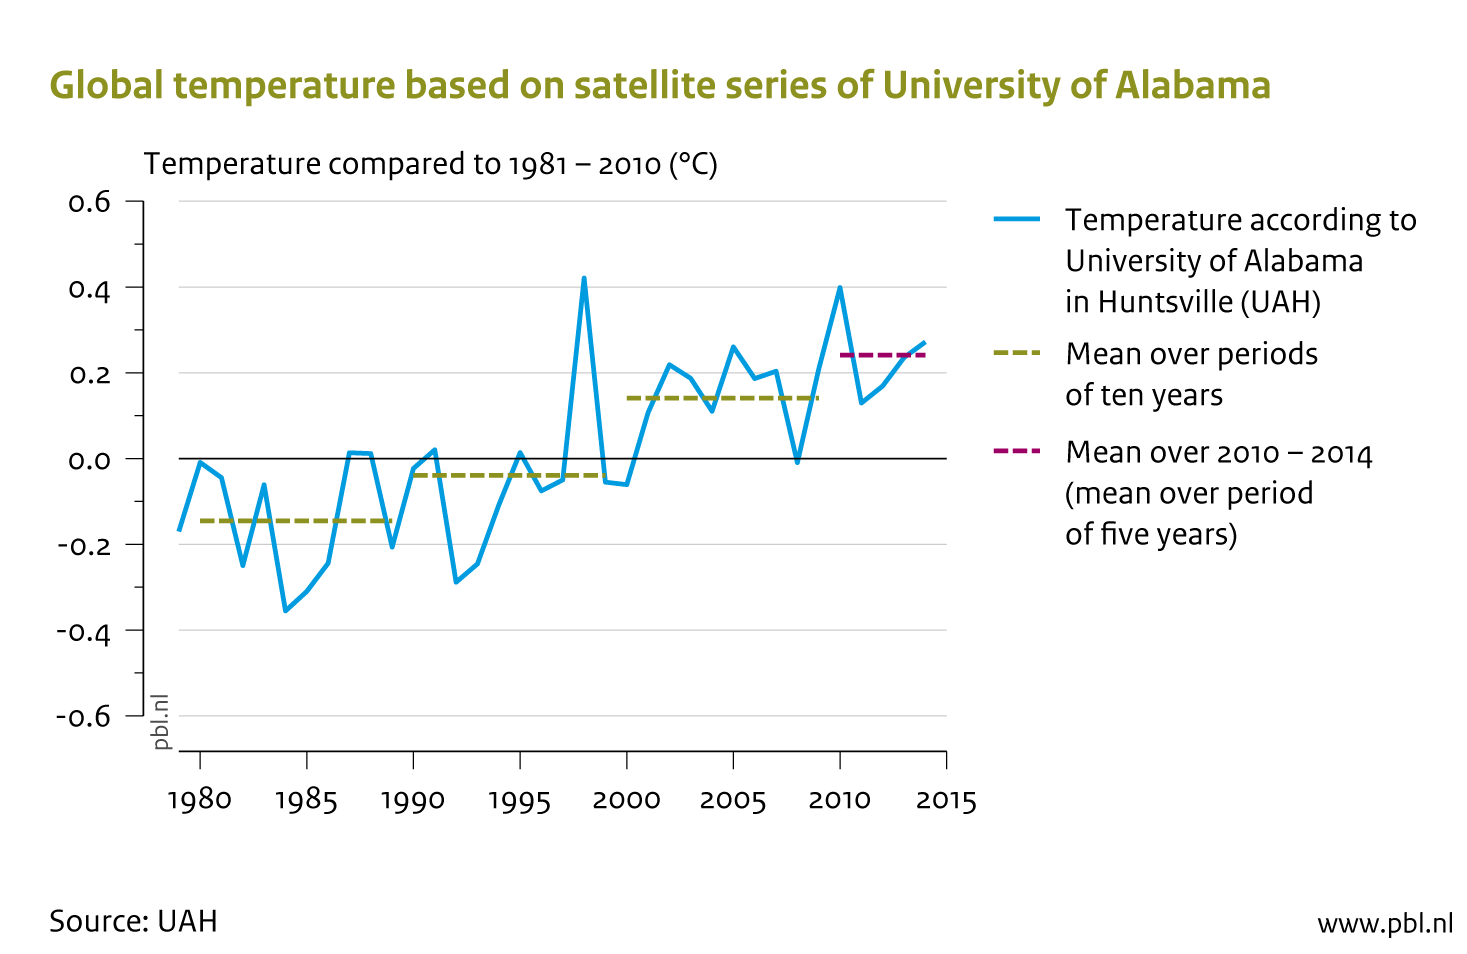 The UAH temperature series since 1979 (no satellites were available on the period before then). The green lines represent the mean over periods of 10 years. The one on the far right is the mean over the 2010–2014 period.